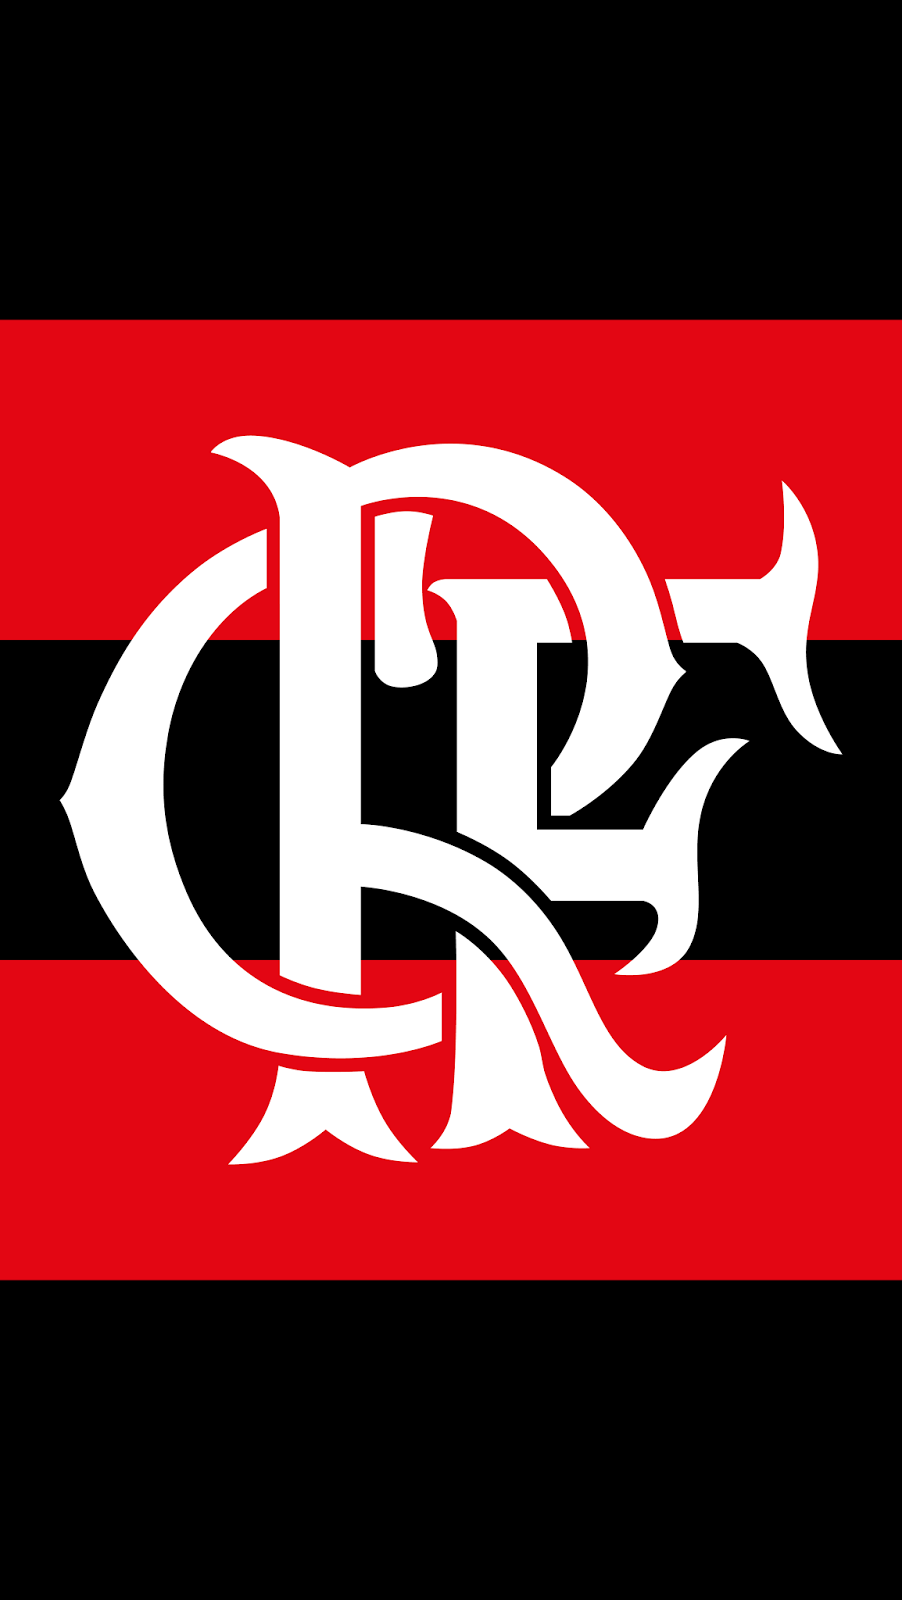 Wallpapers Flamengo para celular gratis